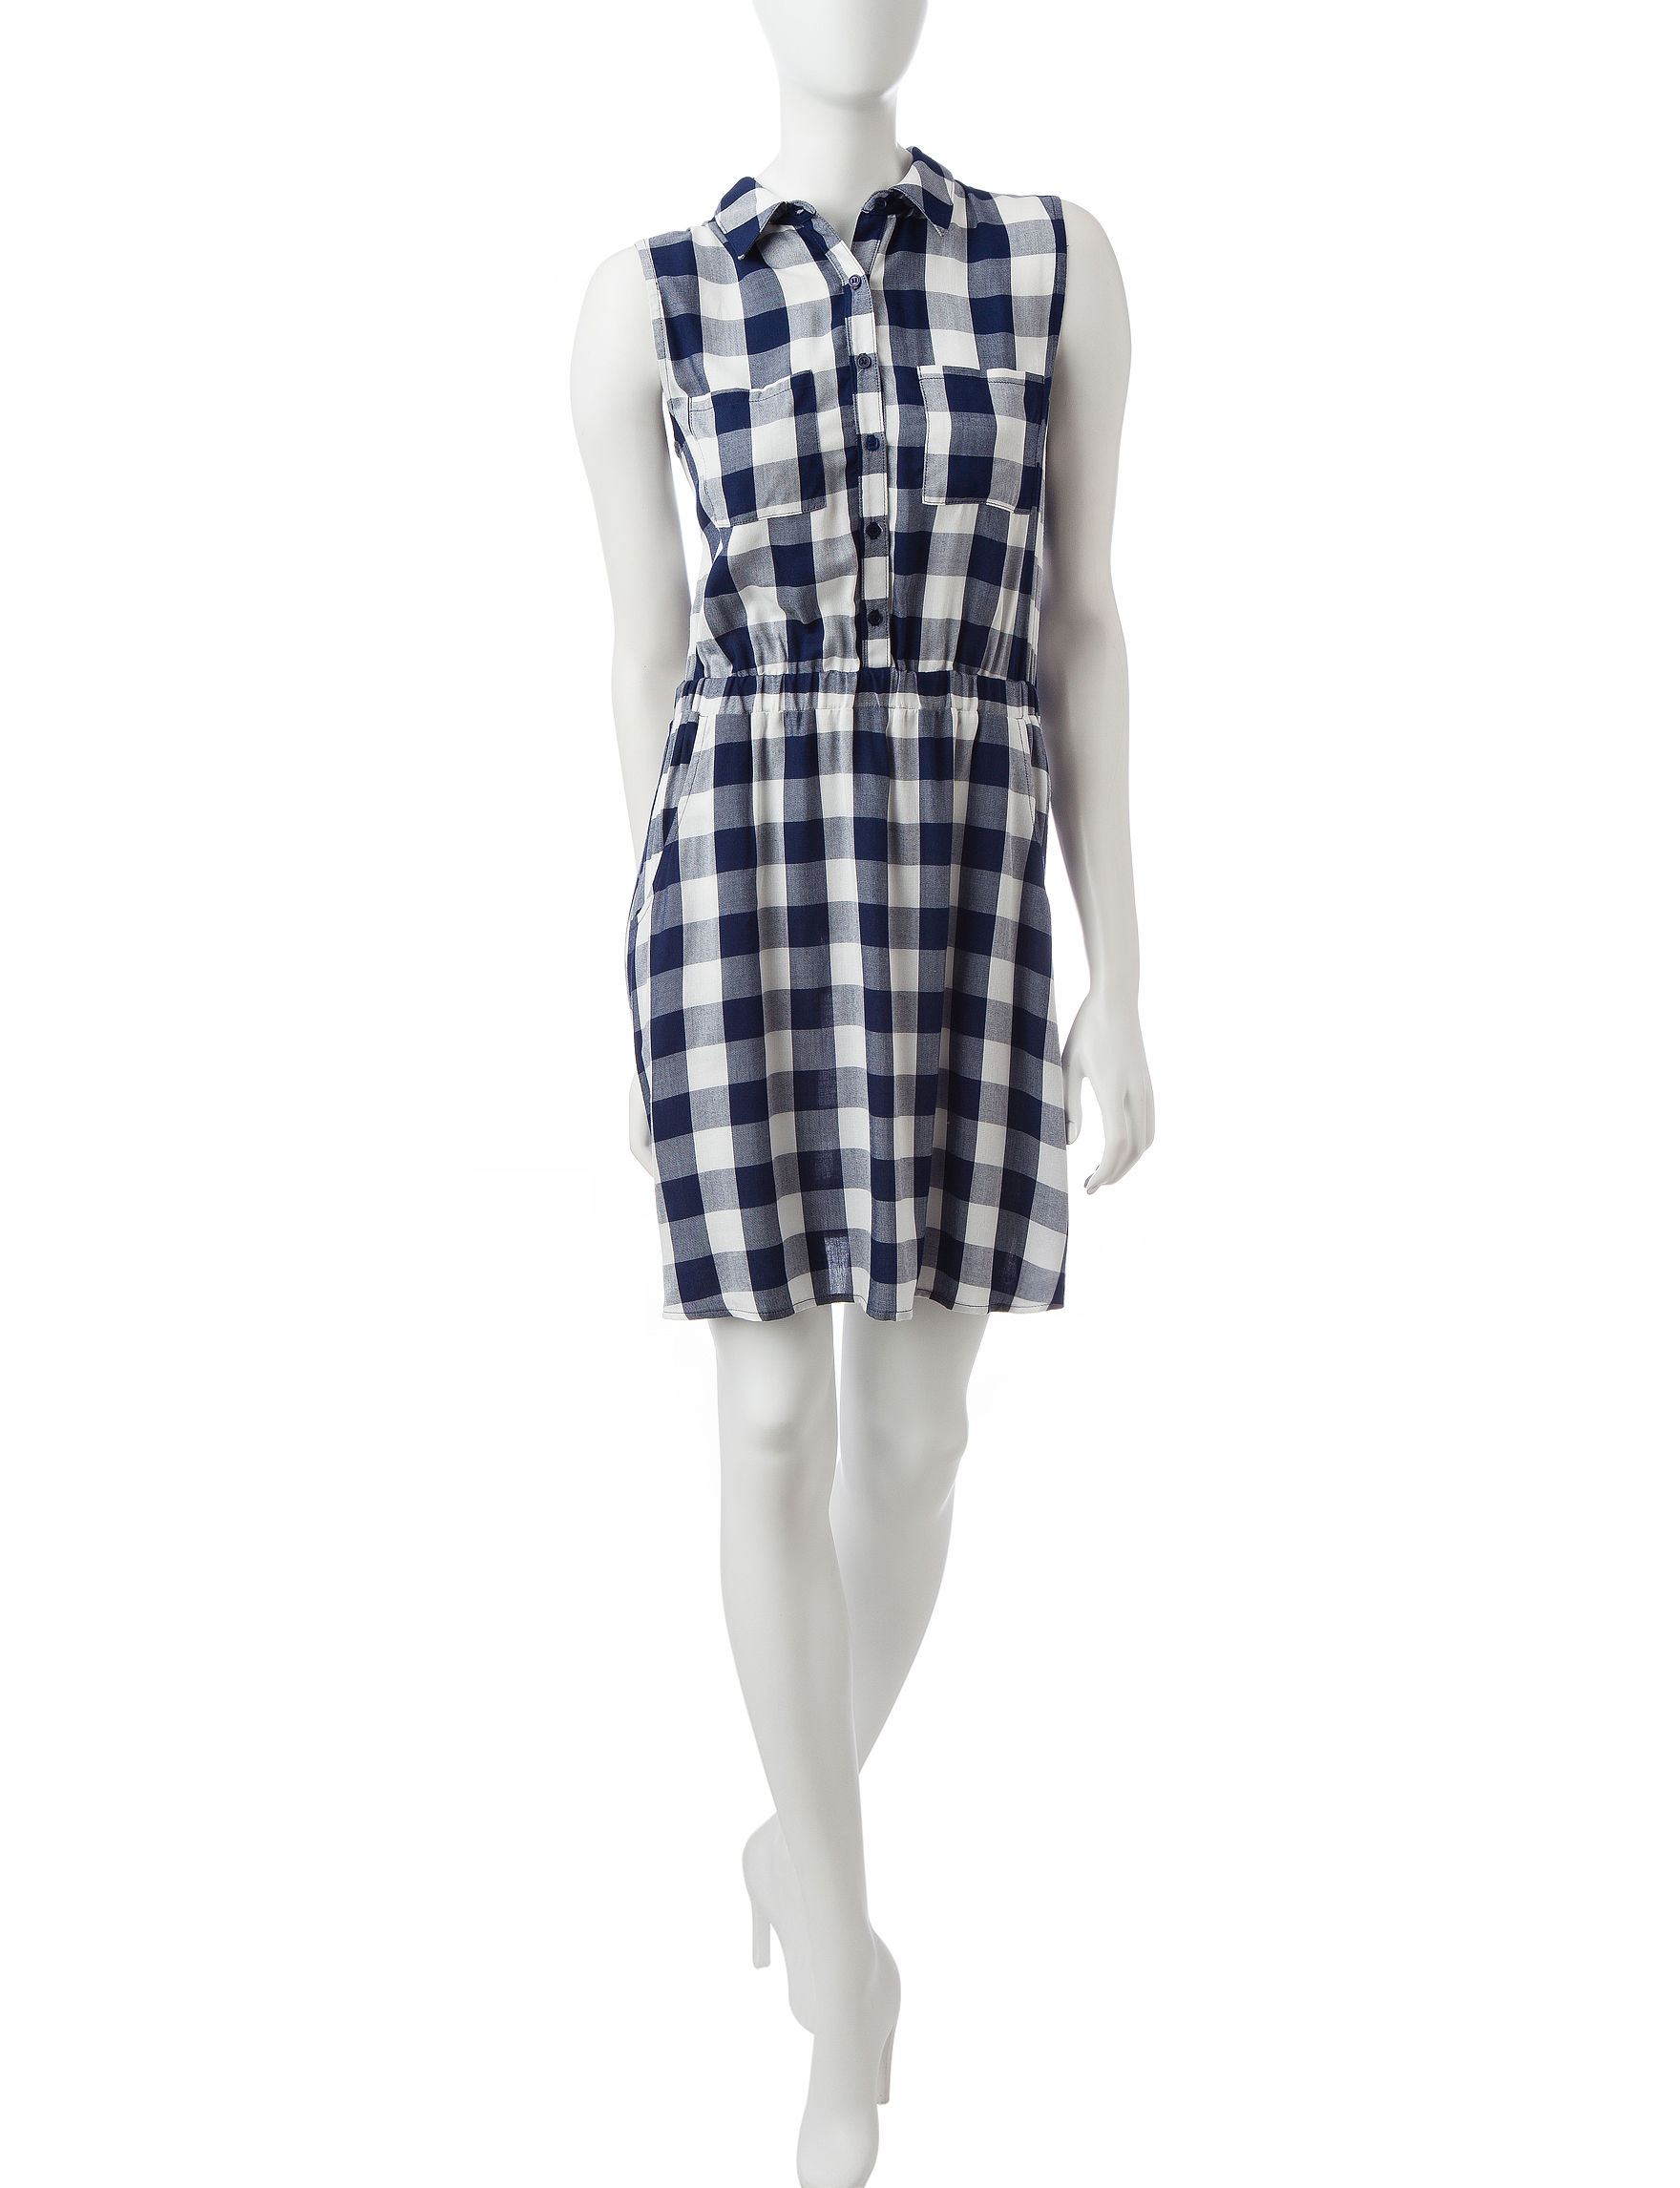 Fire Navy Everyday & Casual Shift Dresses